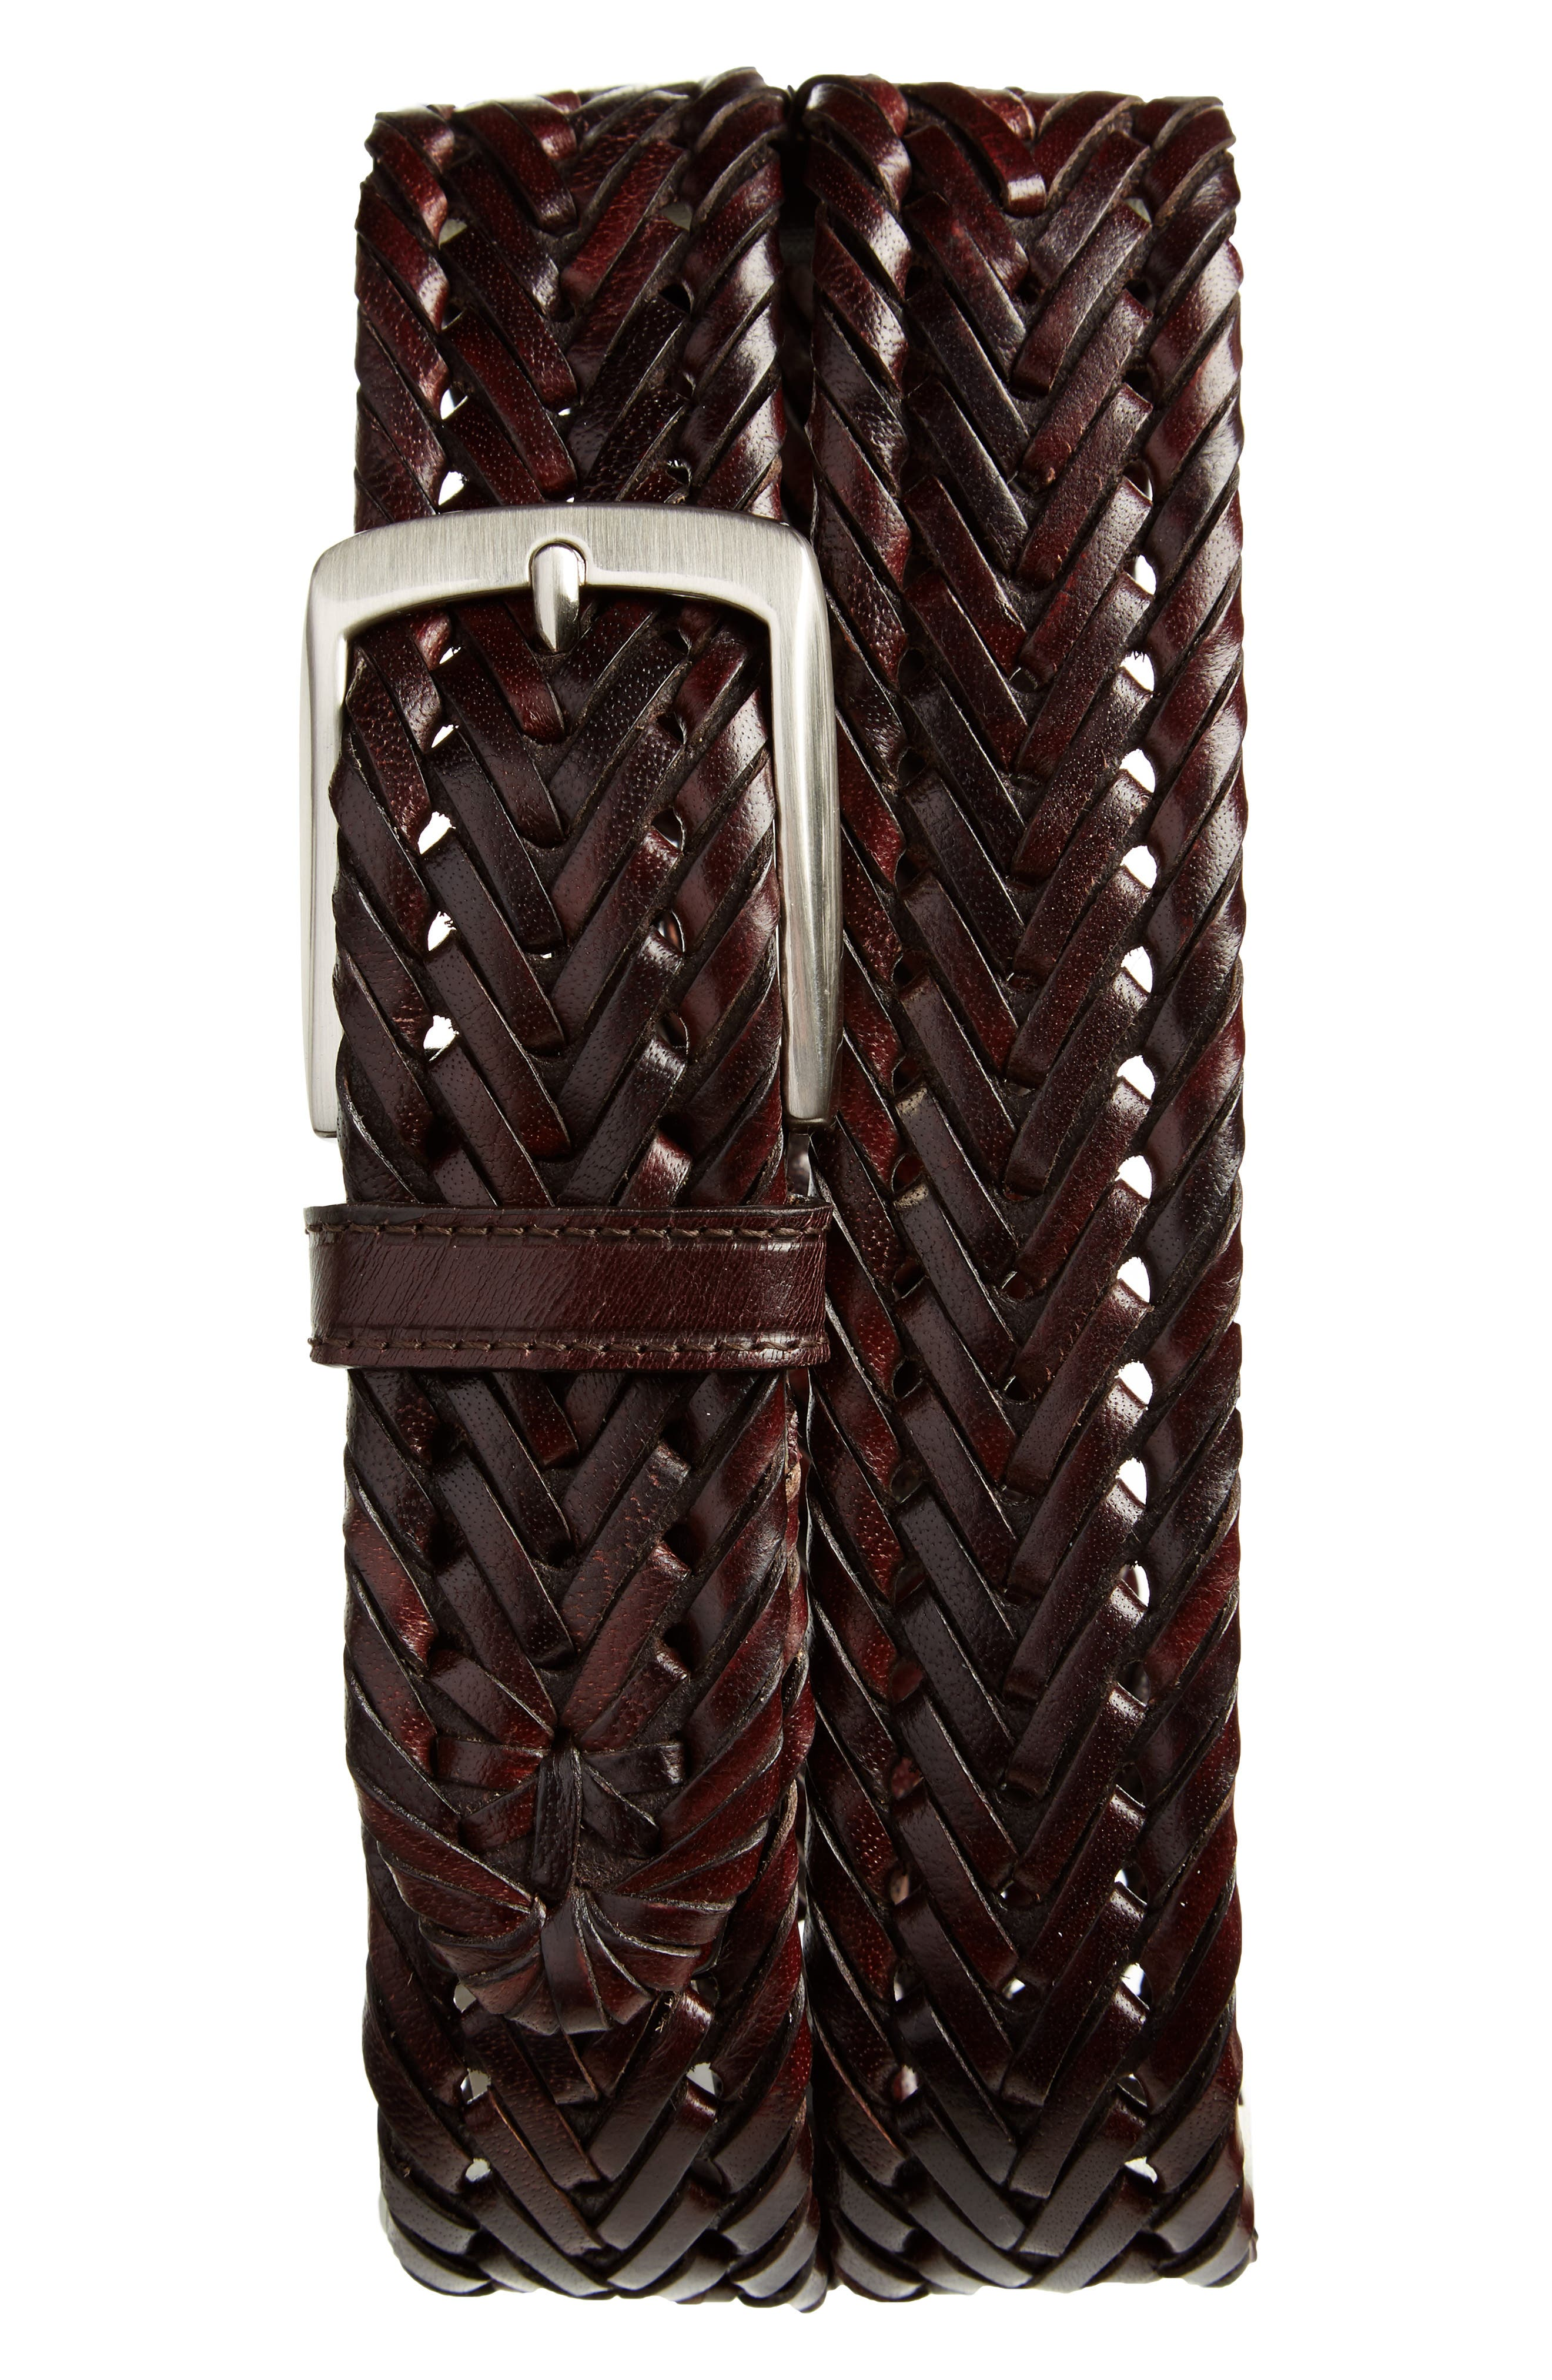 Trafalgar Enzo Braided Leather Belt